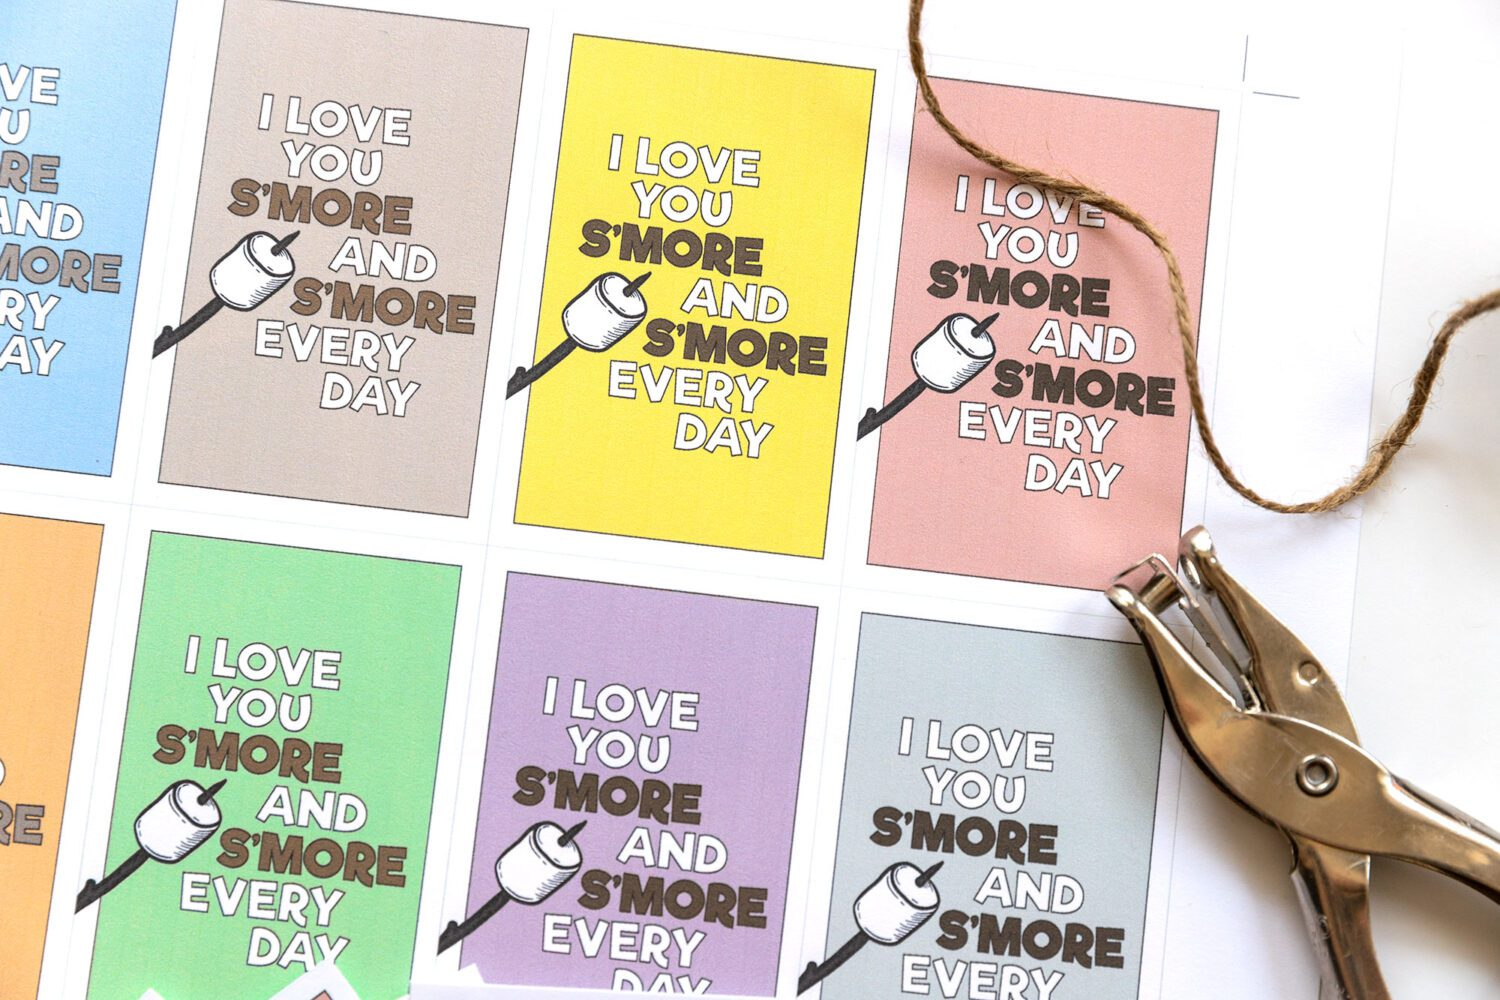 paper printable in different colors, all say I love you s'more and s'more every day